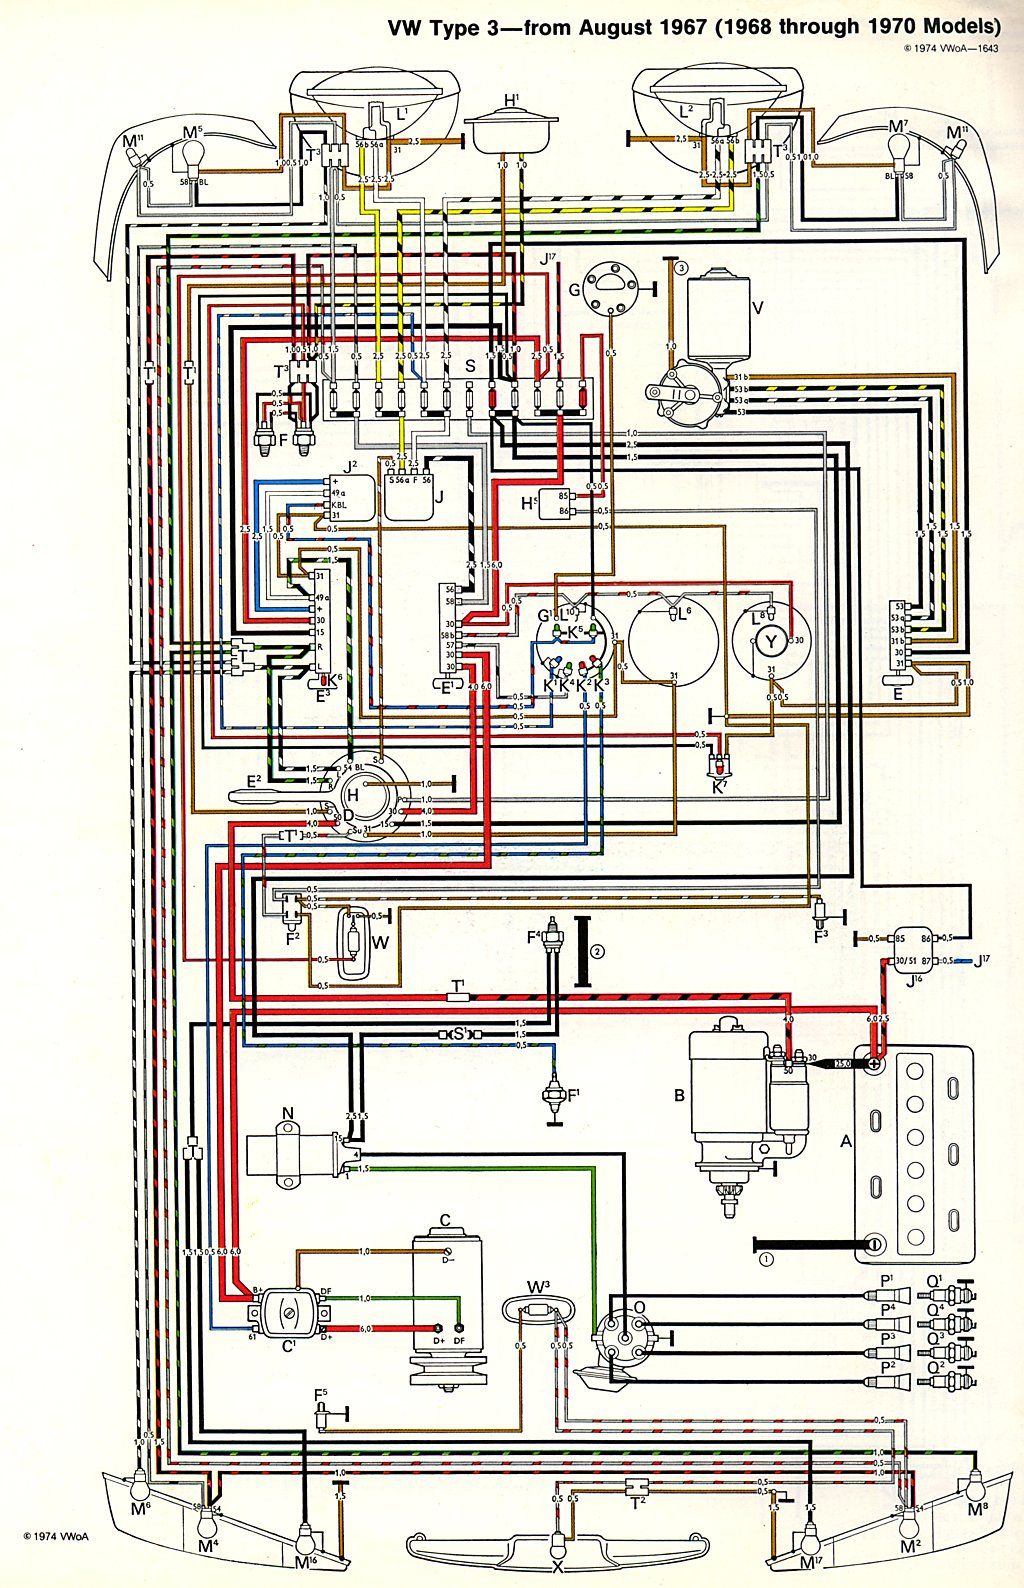 thesamba com type 3 wiring diagrams Volkswagen Beetle Wiring Diagram